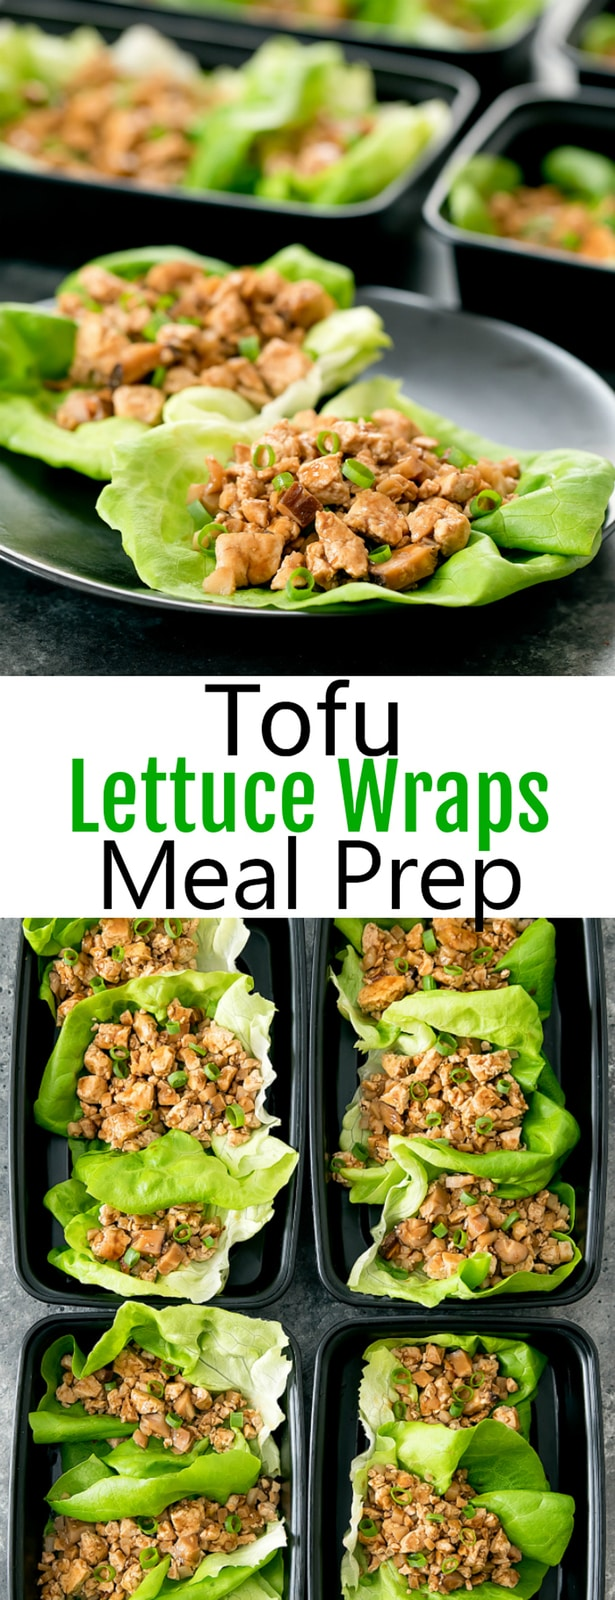 Vegetarian Tofu Lettuce Wraps Meal Prep. A copycat version of P.F. Chang's lettuce wraps. Easy to make, cheaper and better than take-out.